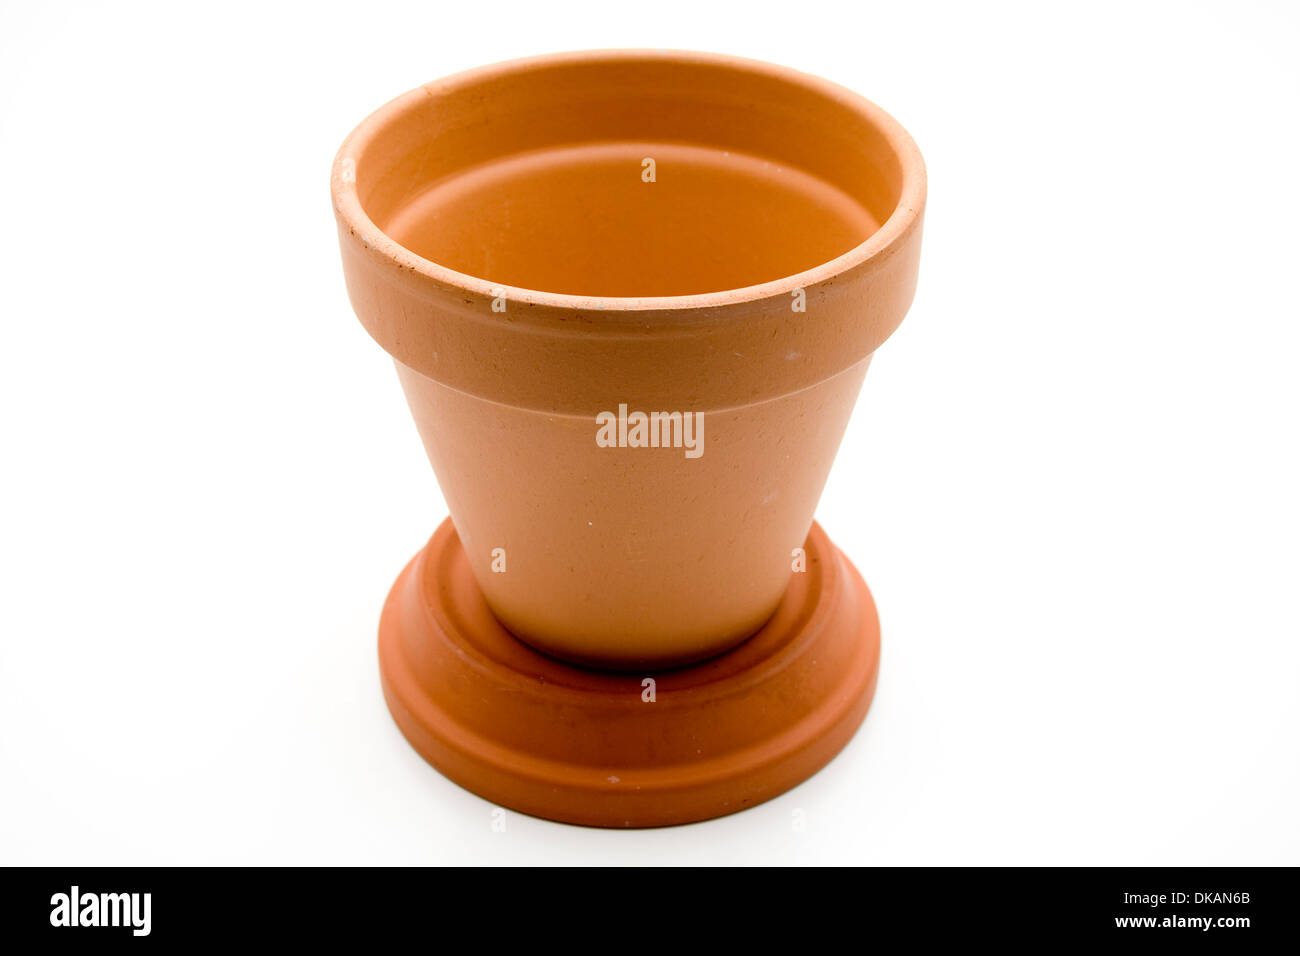 Plant pot with water bowl - Stock Image